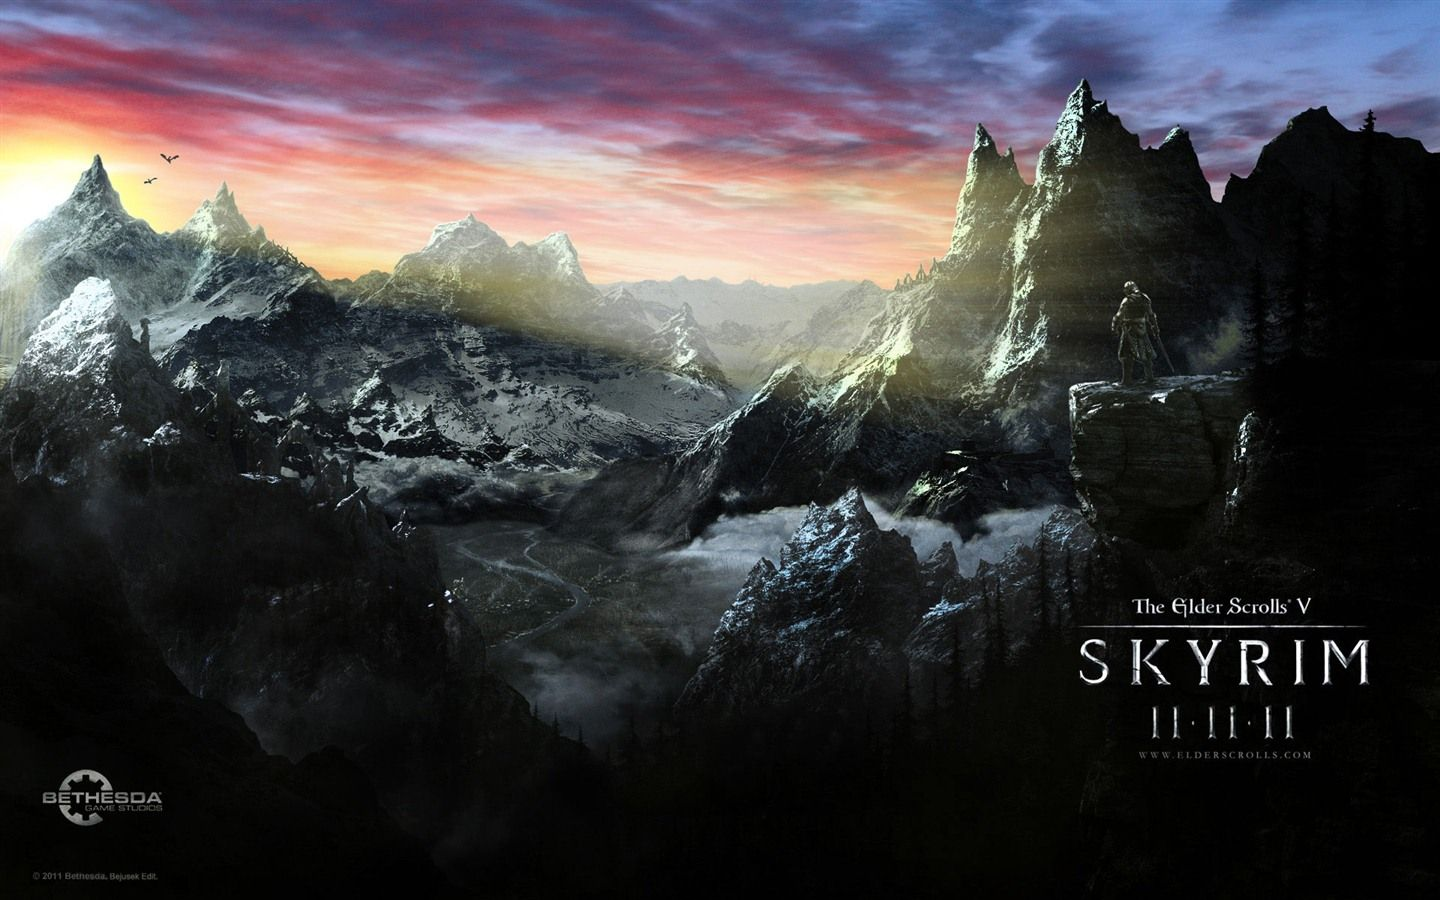 the elder scrolls v: skyrim hd wallpapers #15 - 1440x900 wallpaper